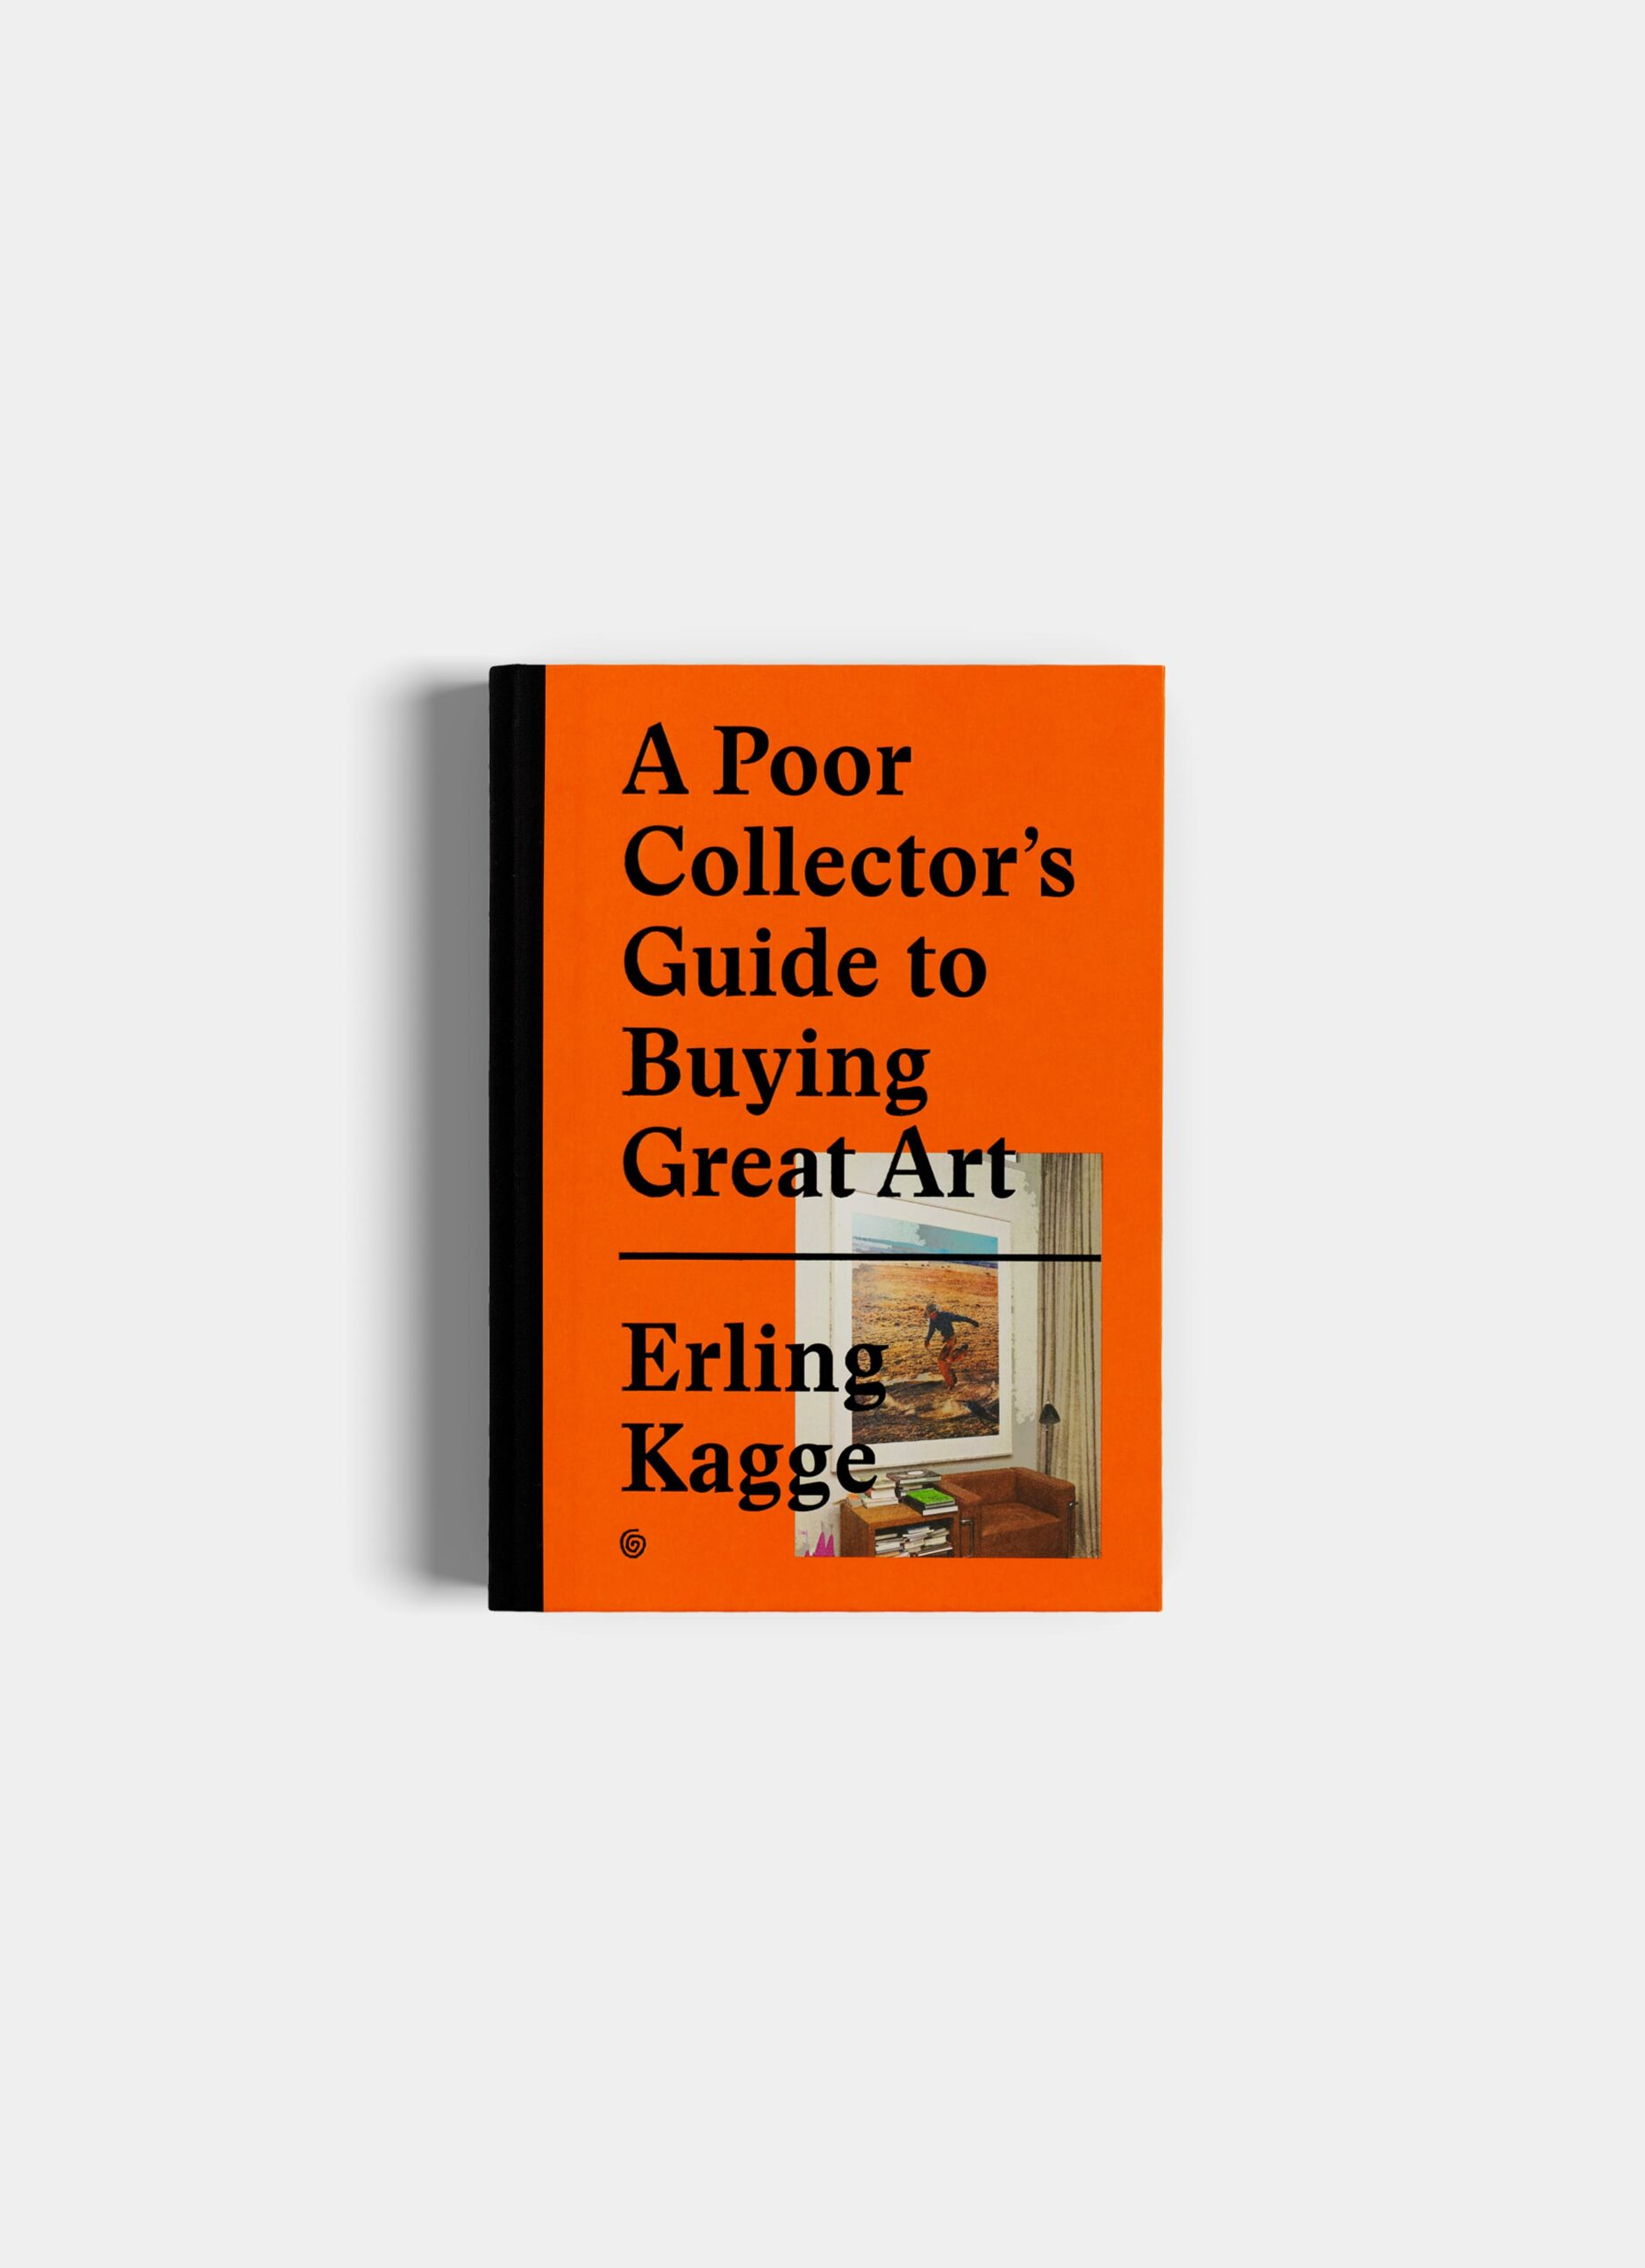 Gestalten - Erling Kagge - A Poor Collectors Guide to Buying Great Art